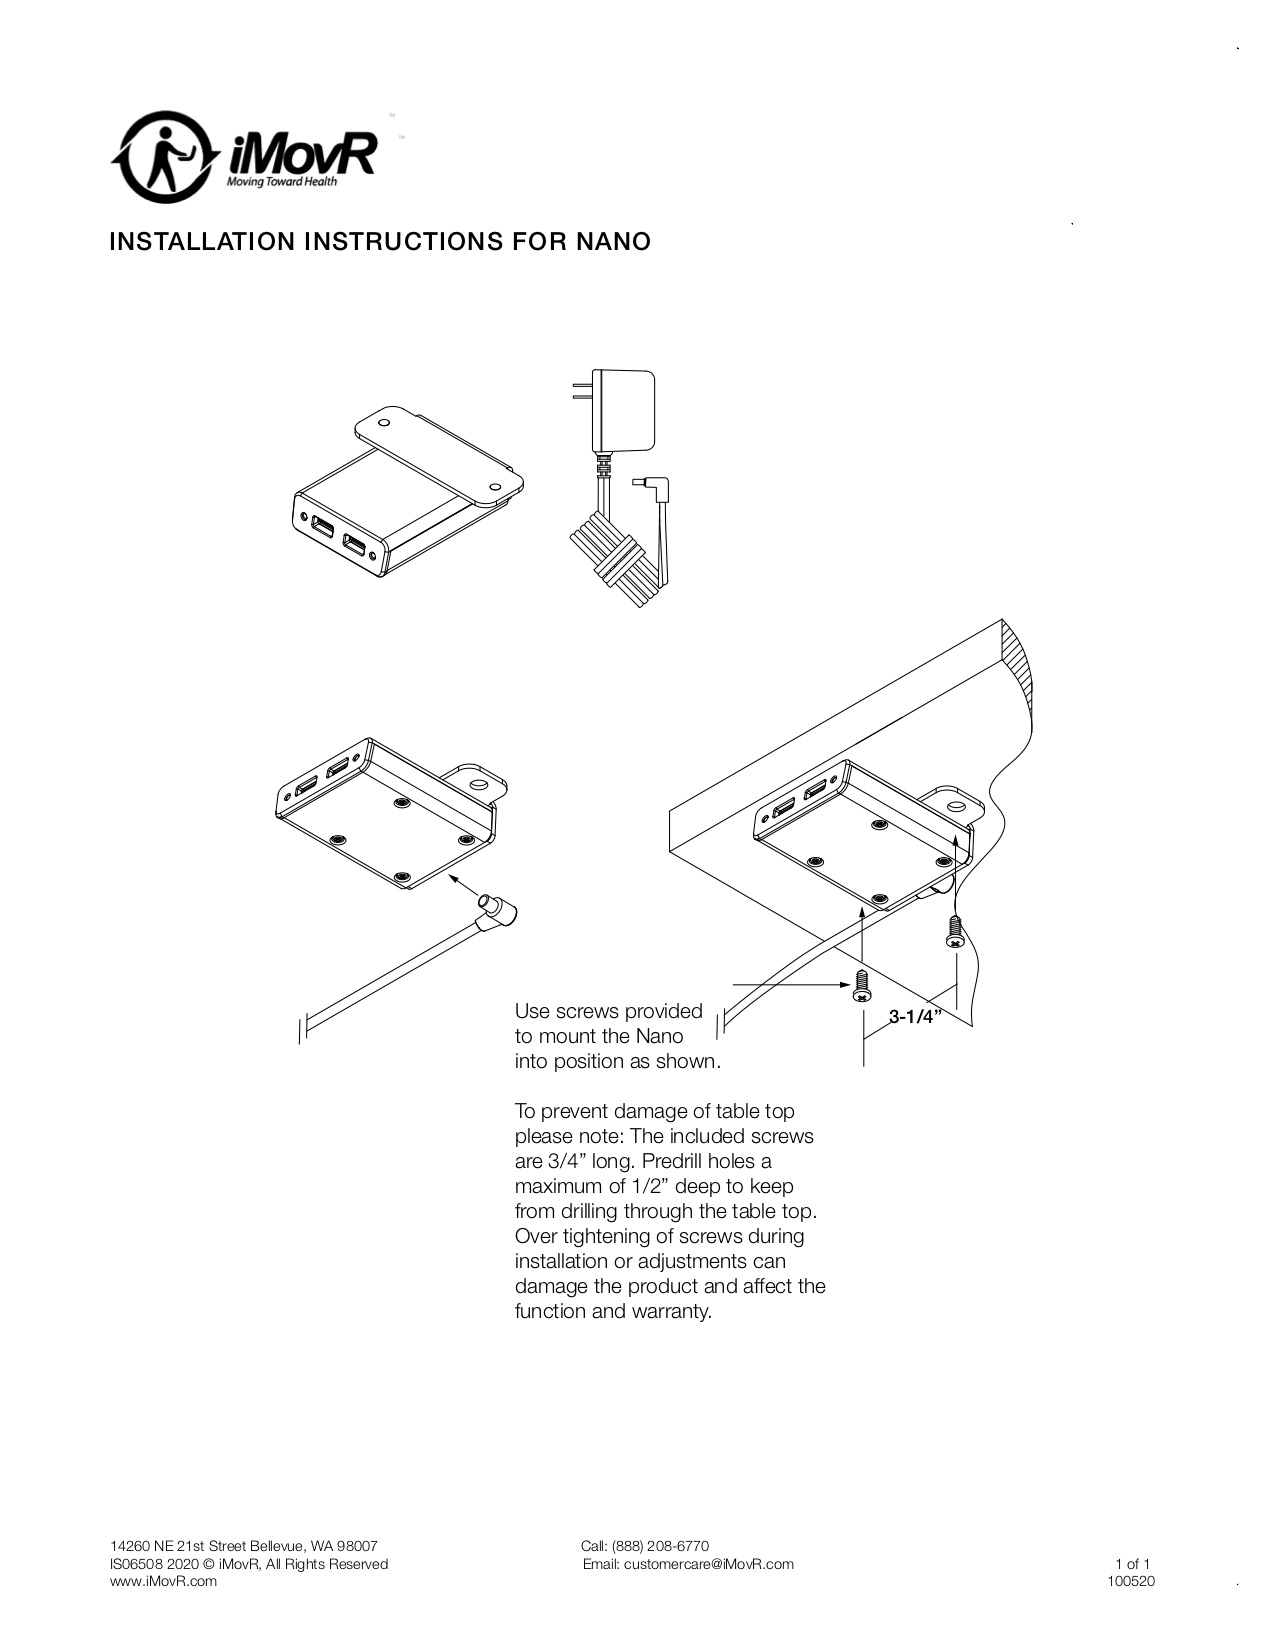 Nano Instillation Instructions